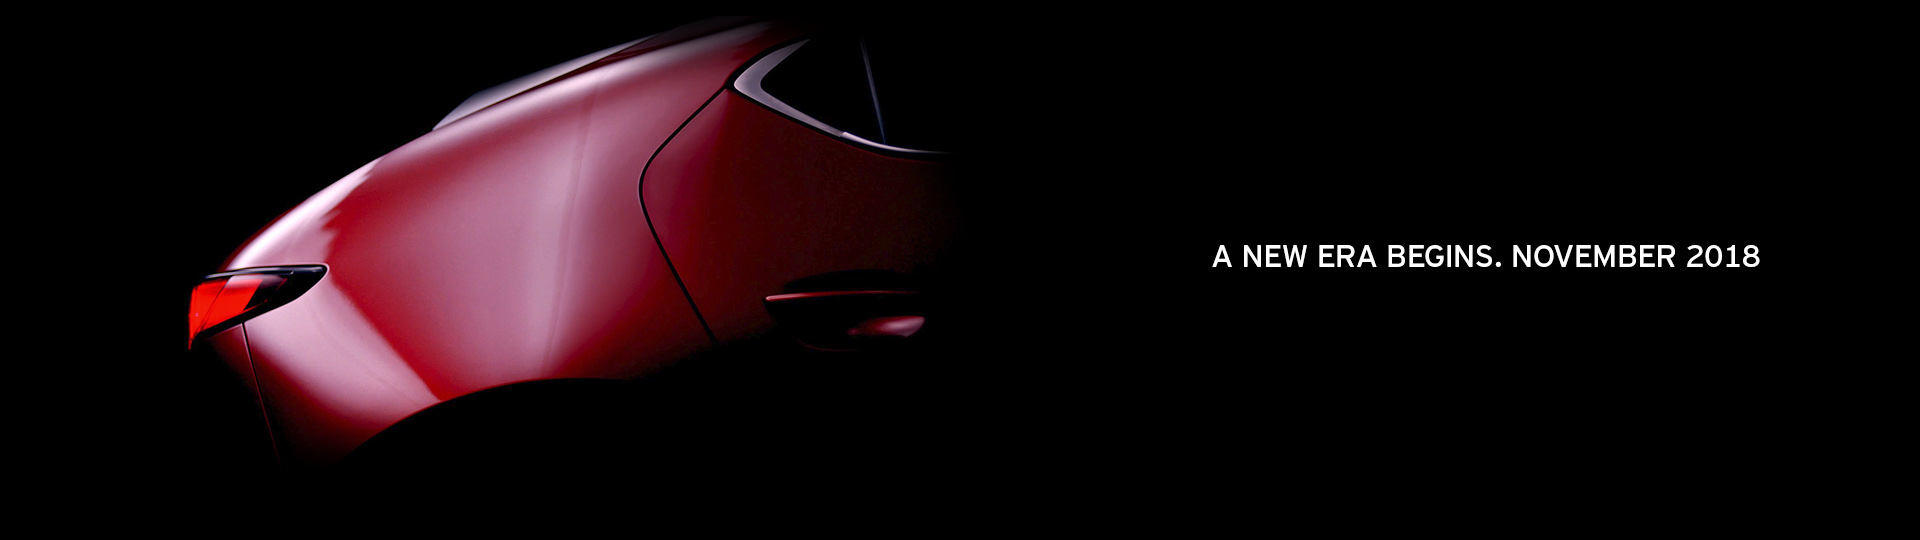 The all-new award winning Mazda 3. The perfect balance between styling, fuel economy and driving exhiliration.